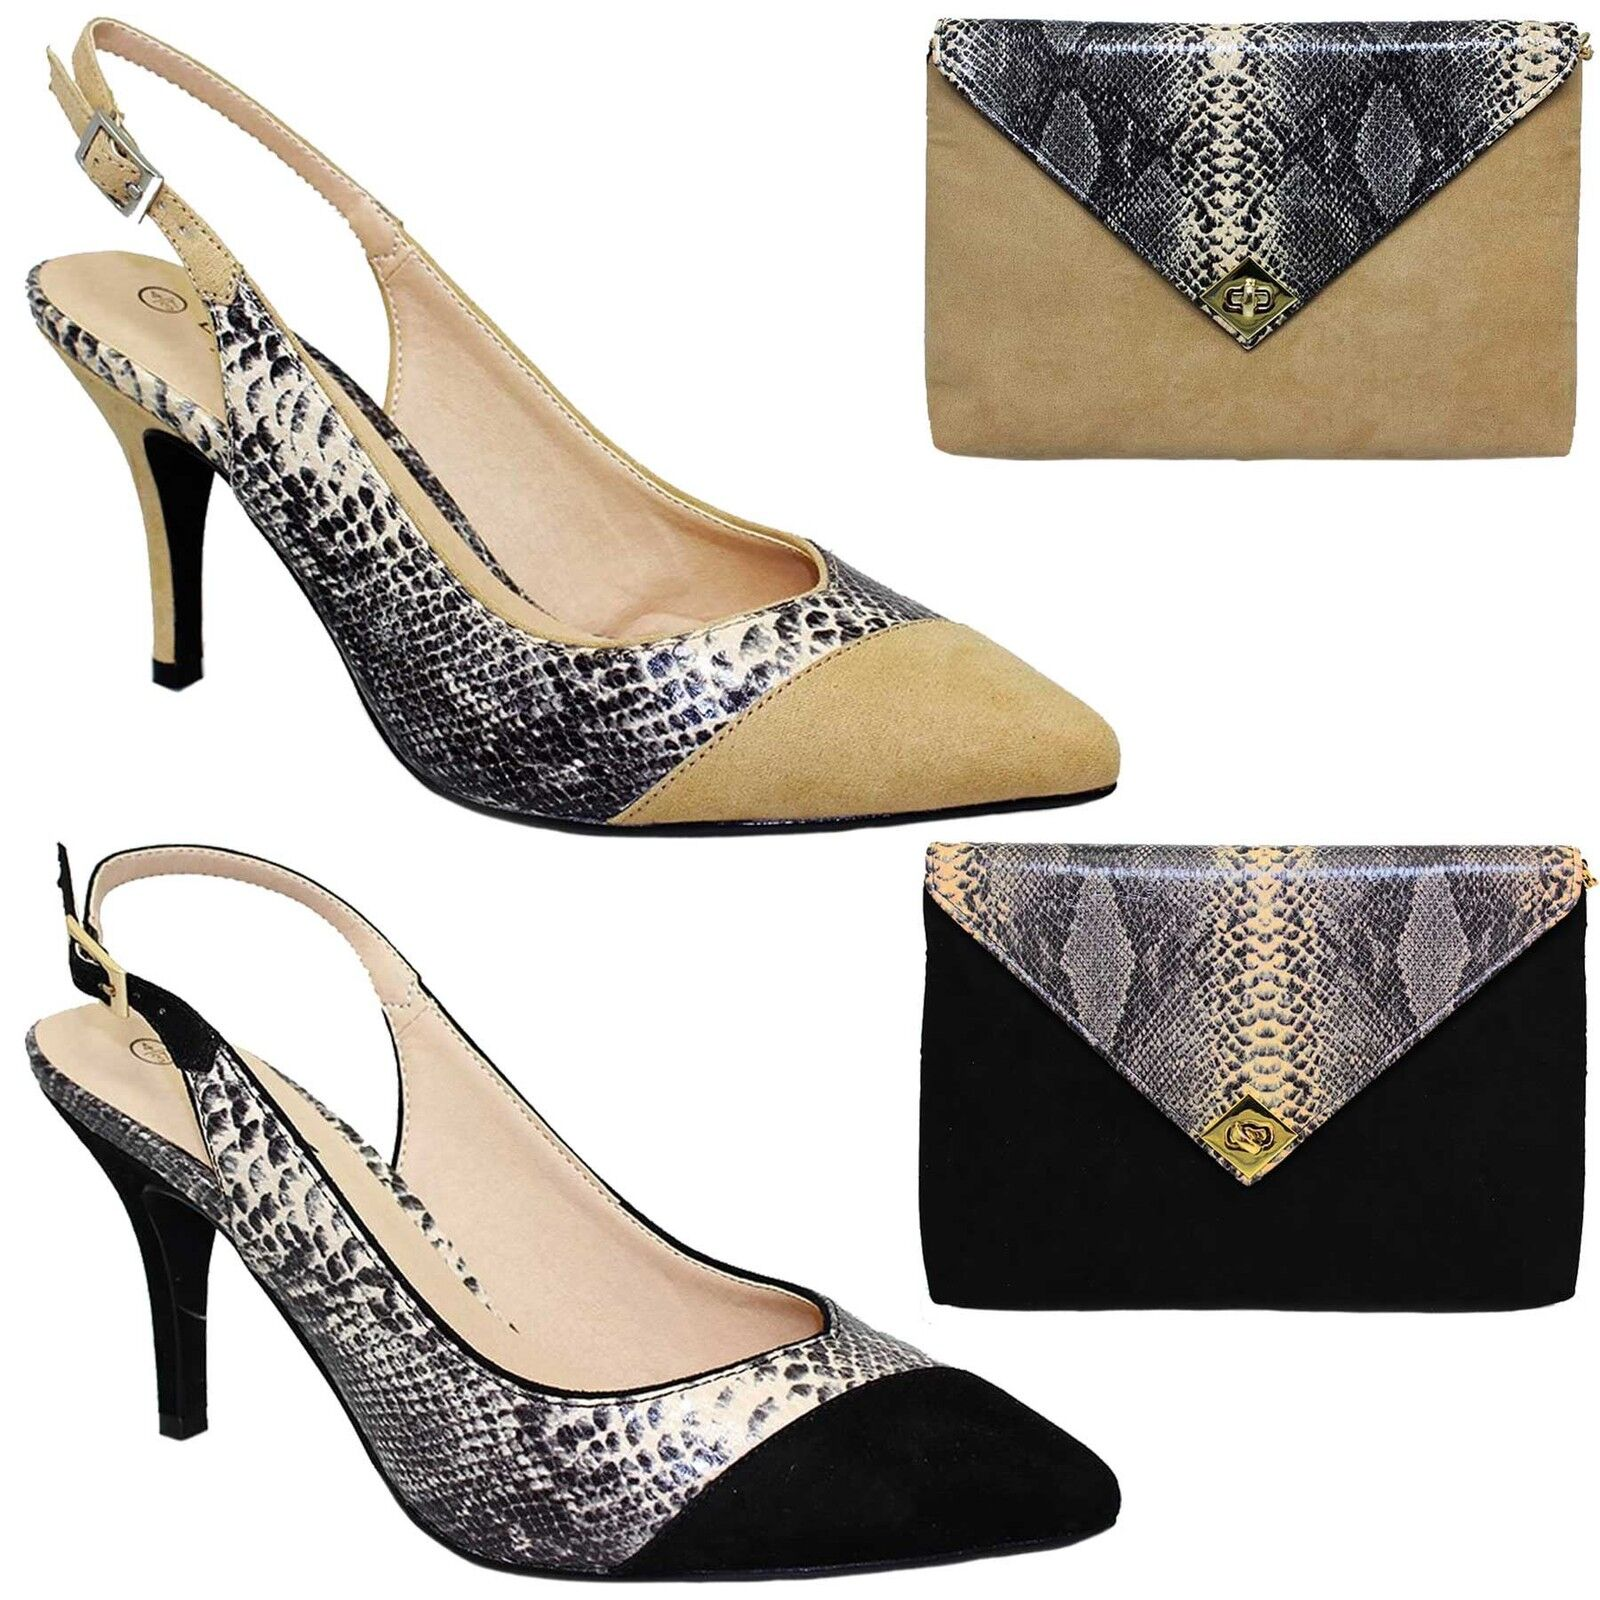 FLV359 Tessie Ladies Pointed Toe Sling Back Snake Suede Low Court Heels